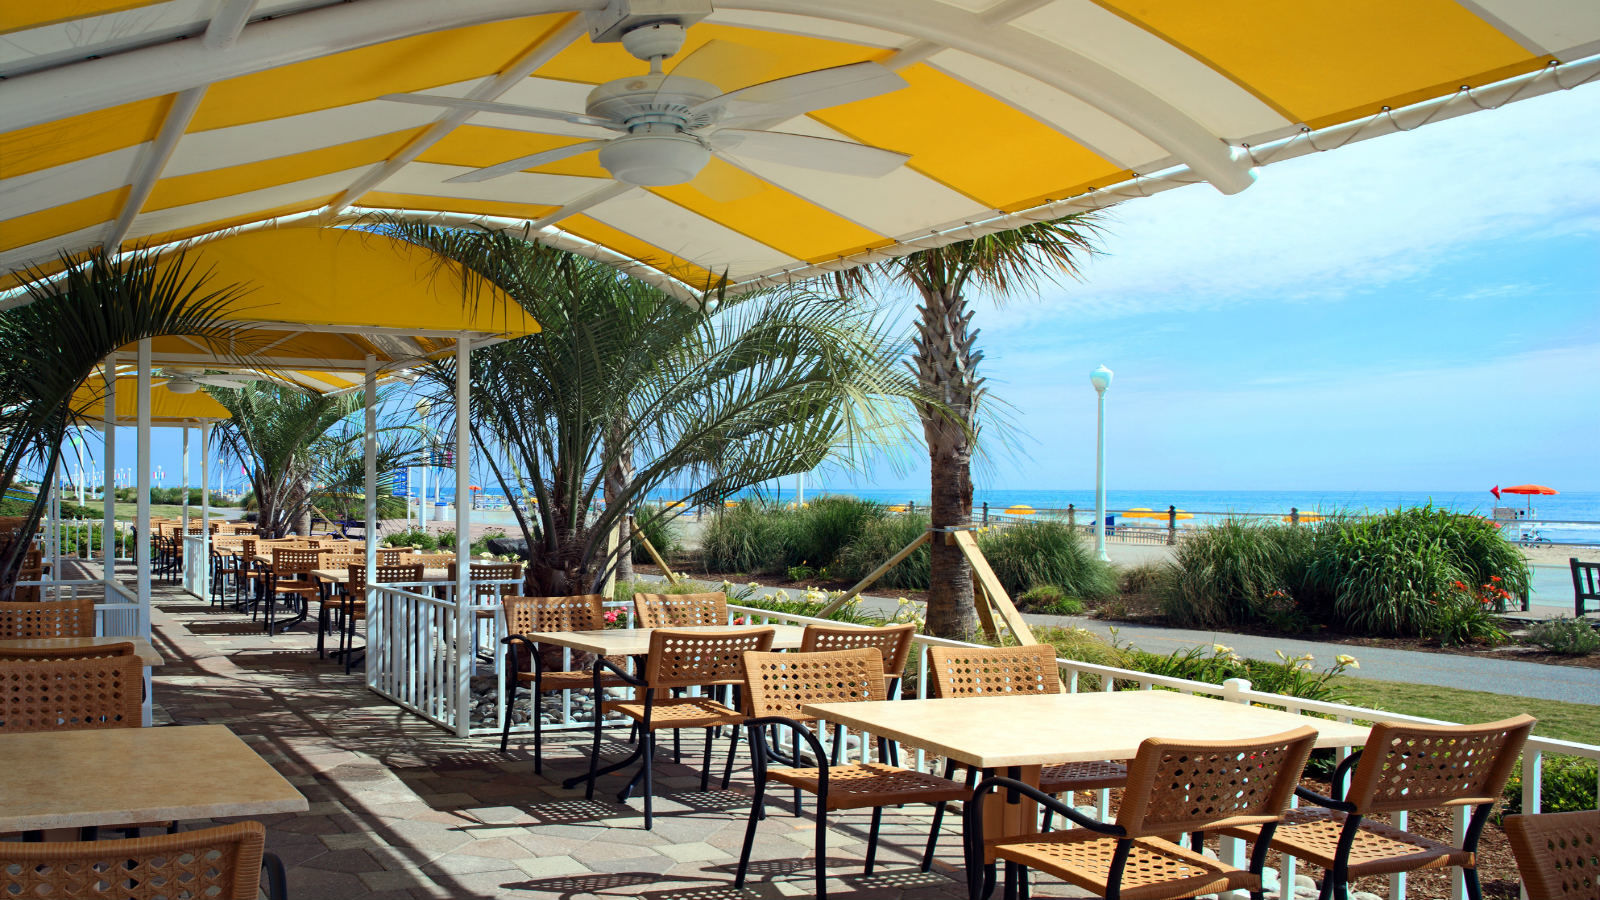 Cabanas Seaside Bar & Grill